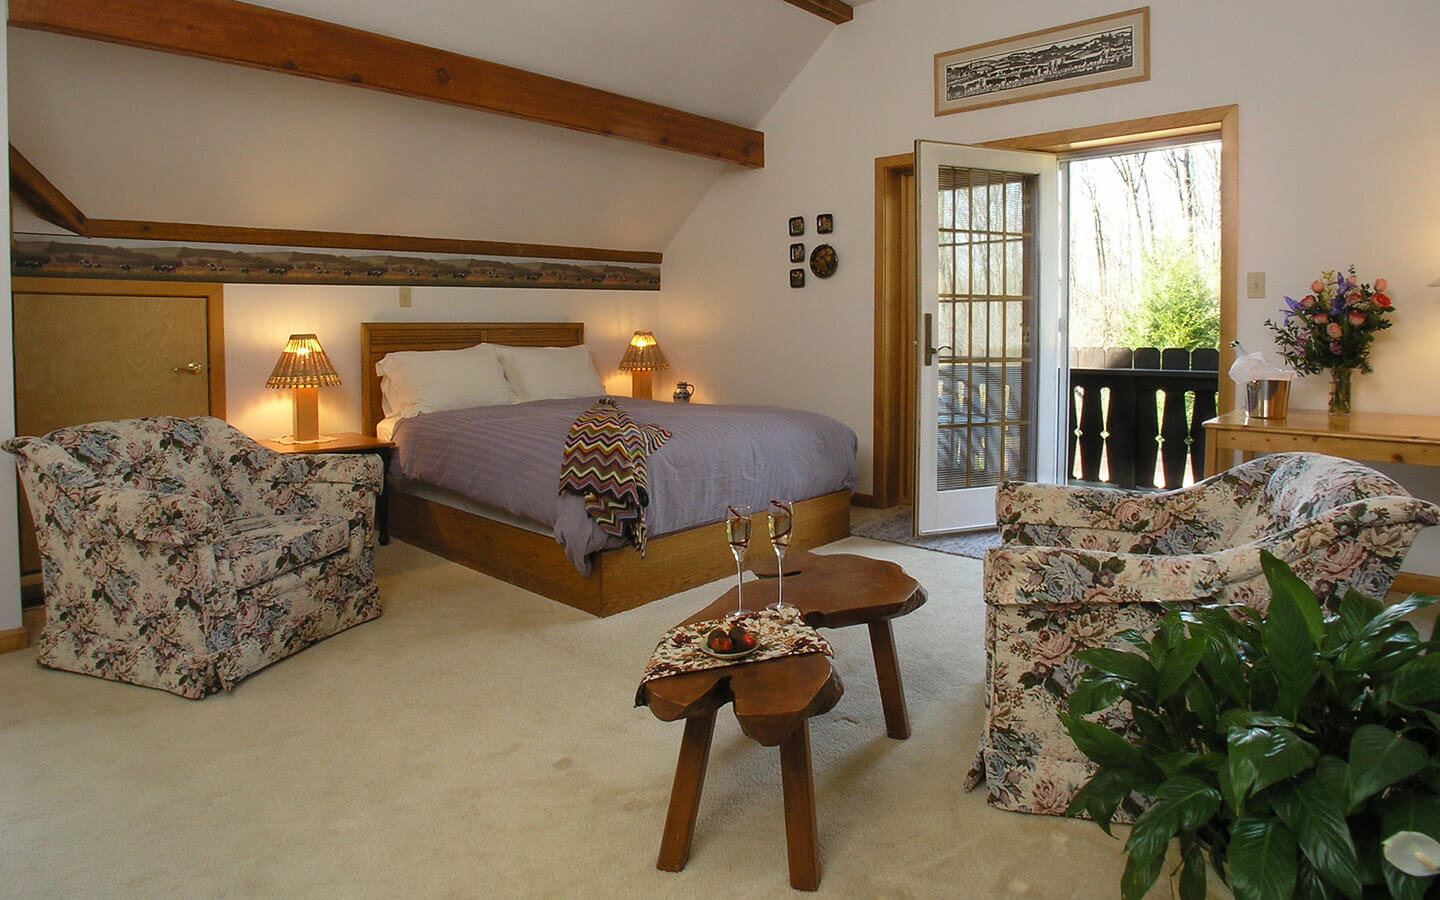 Appenzell Room with bed and chairs at our Lancaster County PA B&B